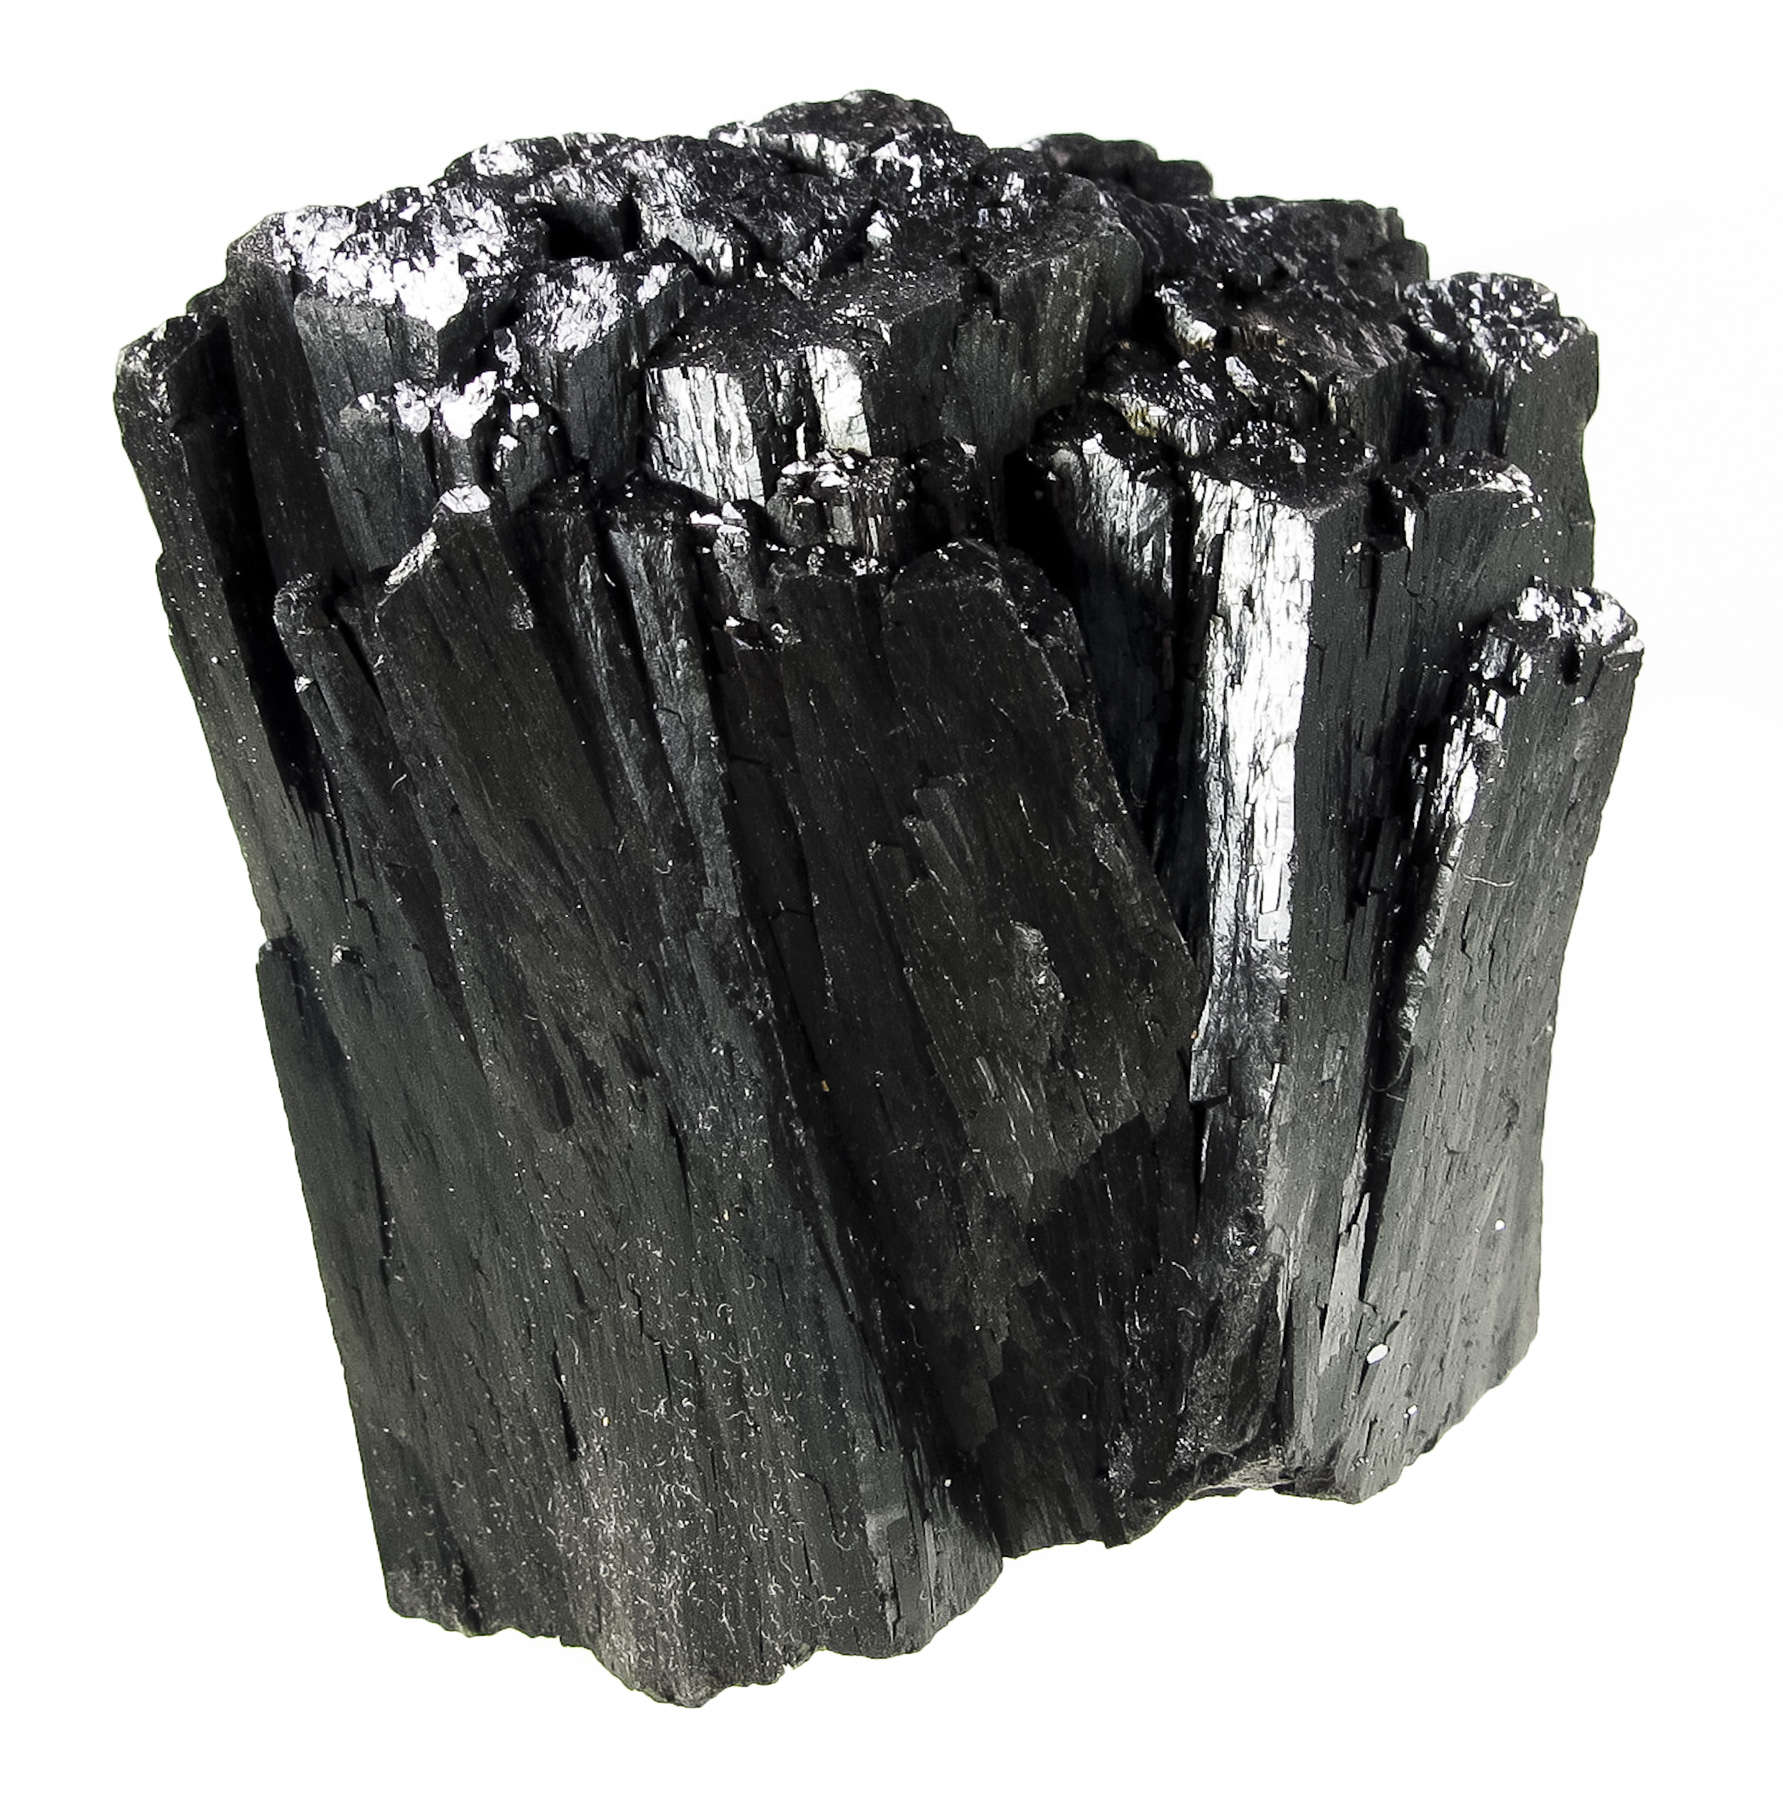 These robust large ilvaite crystals seen piece fatter thicker ilvaite